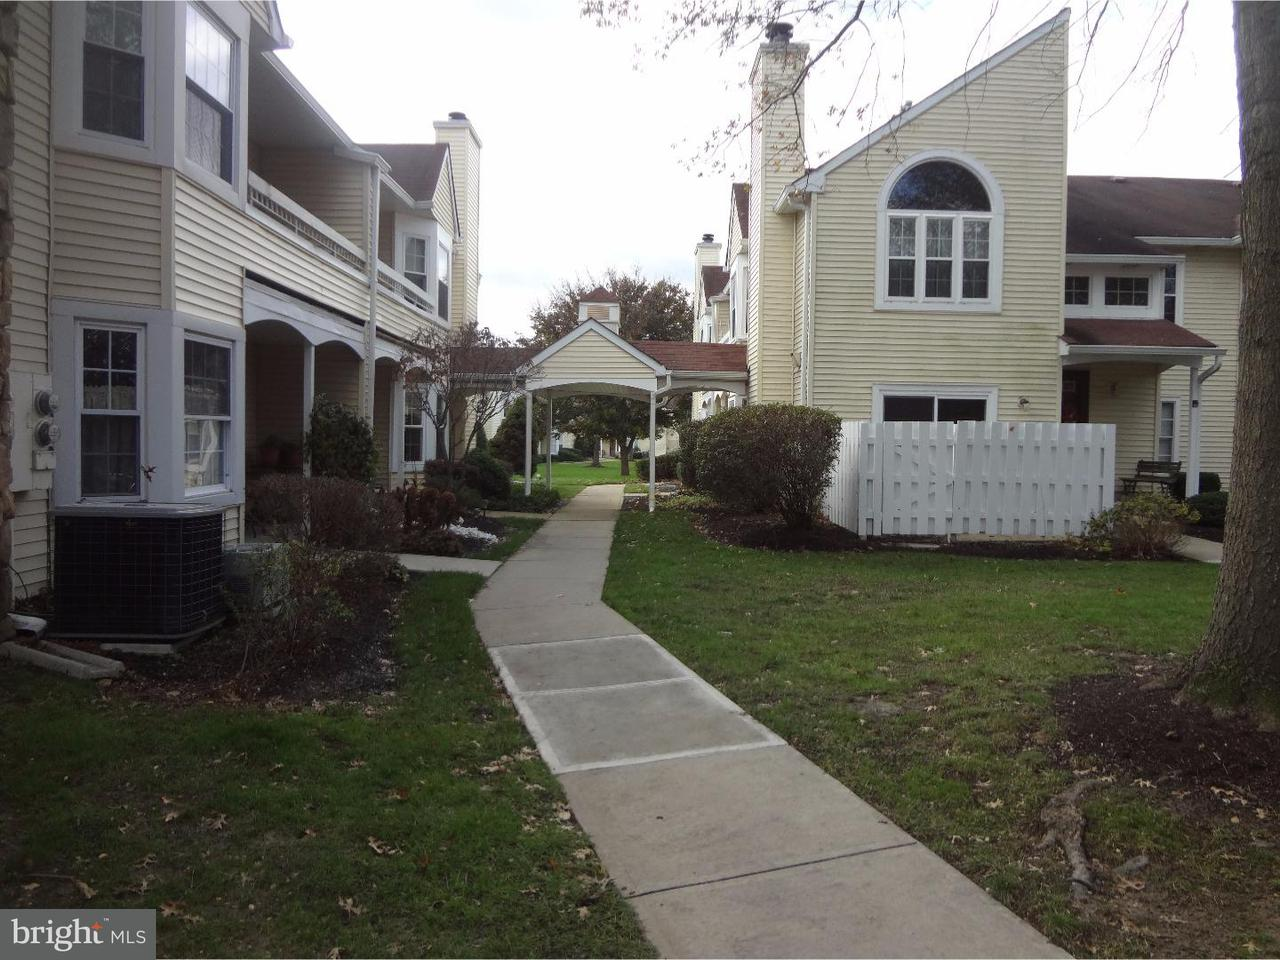 Townhouse for Rent at 116 MILL RUN E Hightstown, New Jersey 08520 United StatesMunicipality: Hightstown Borough